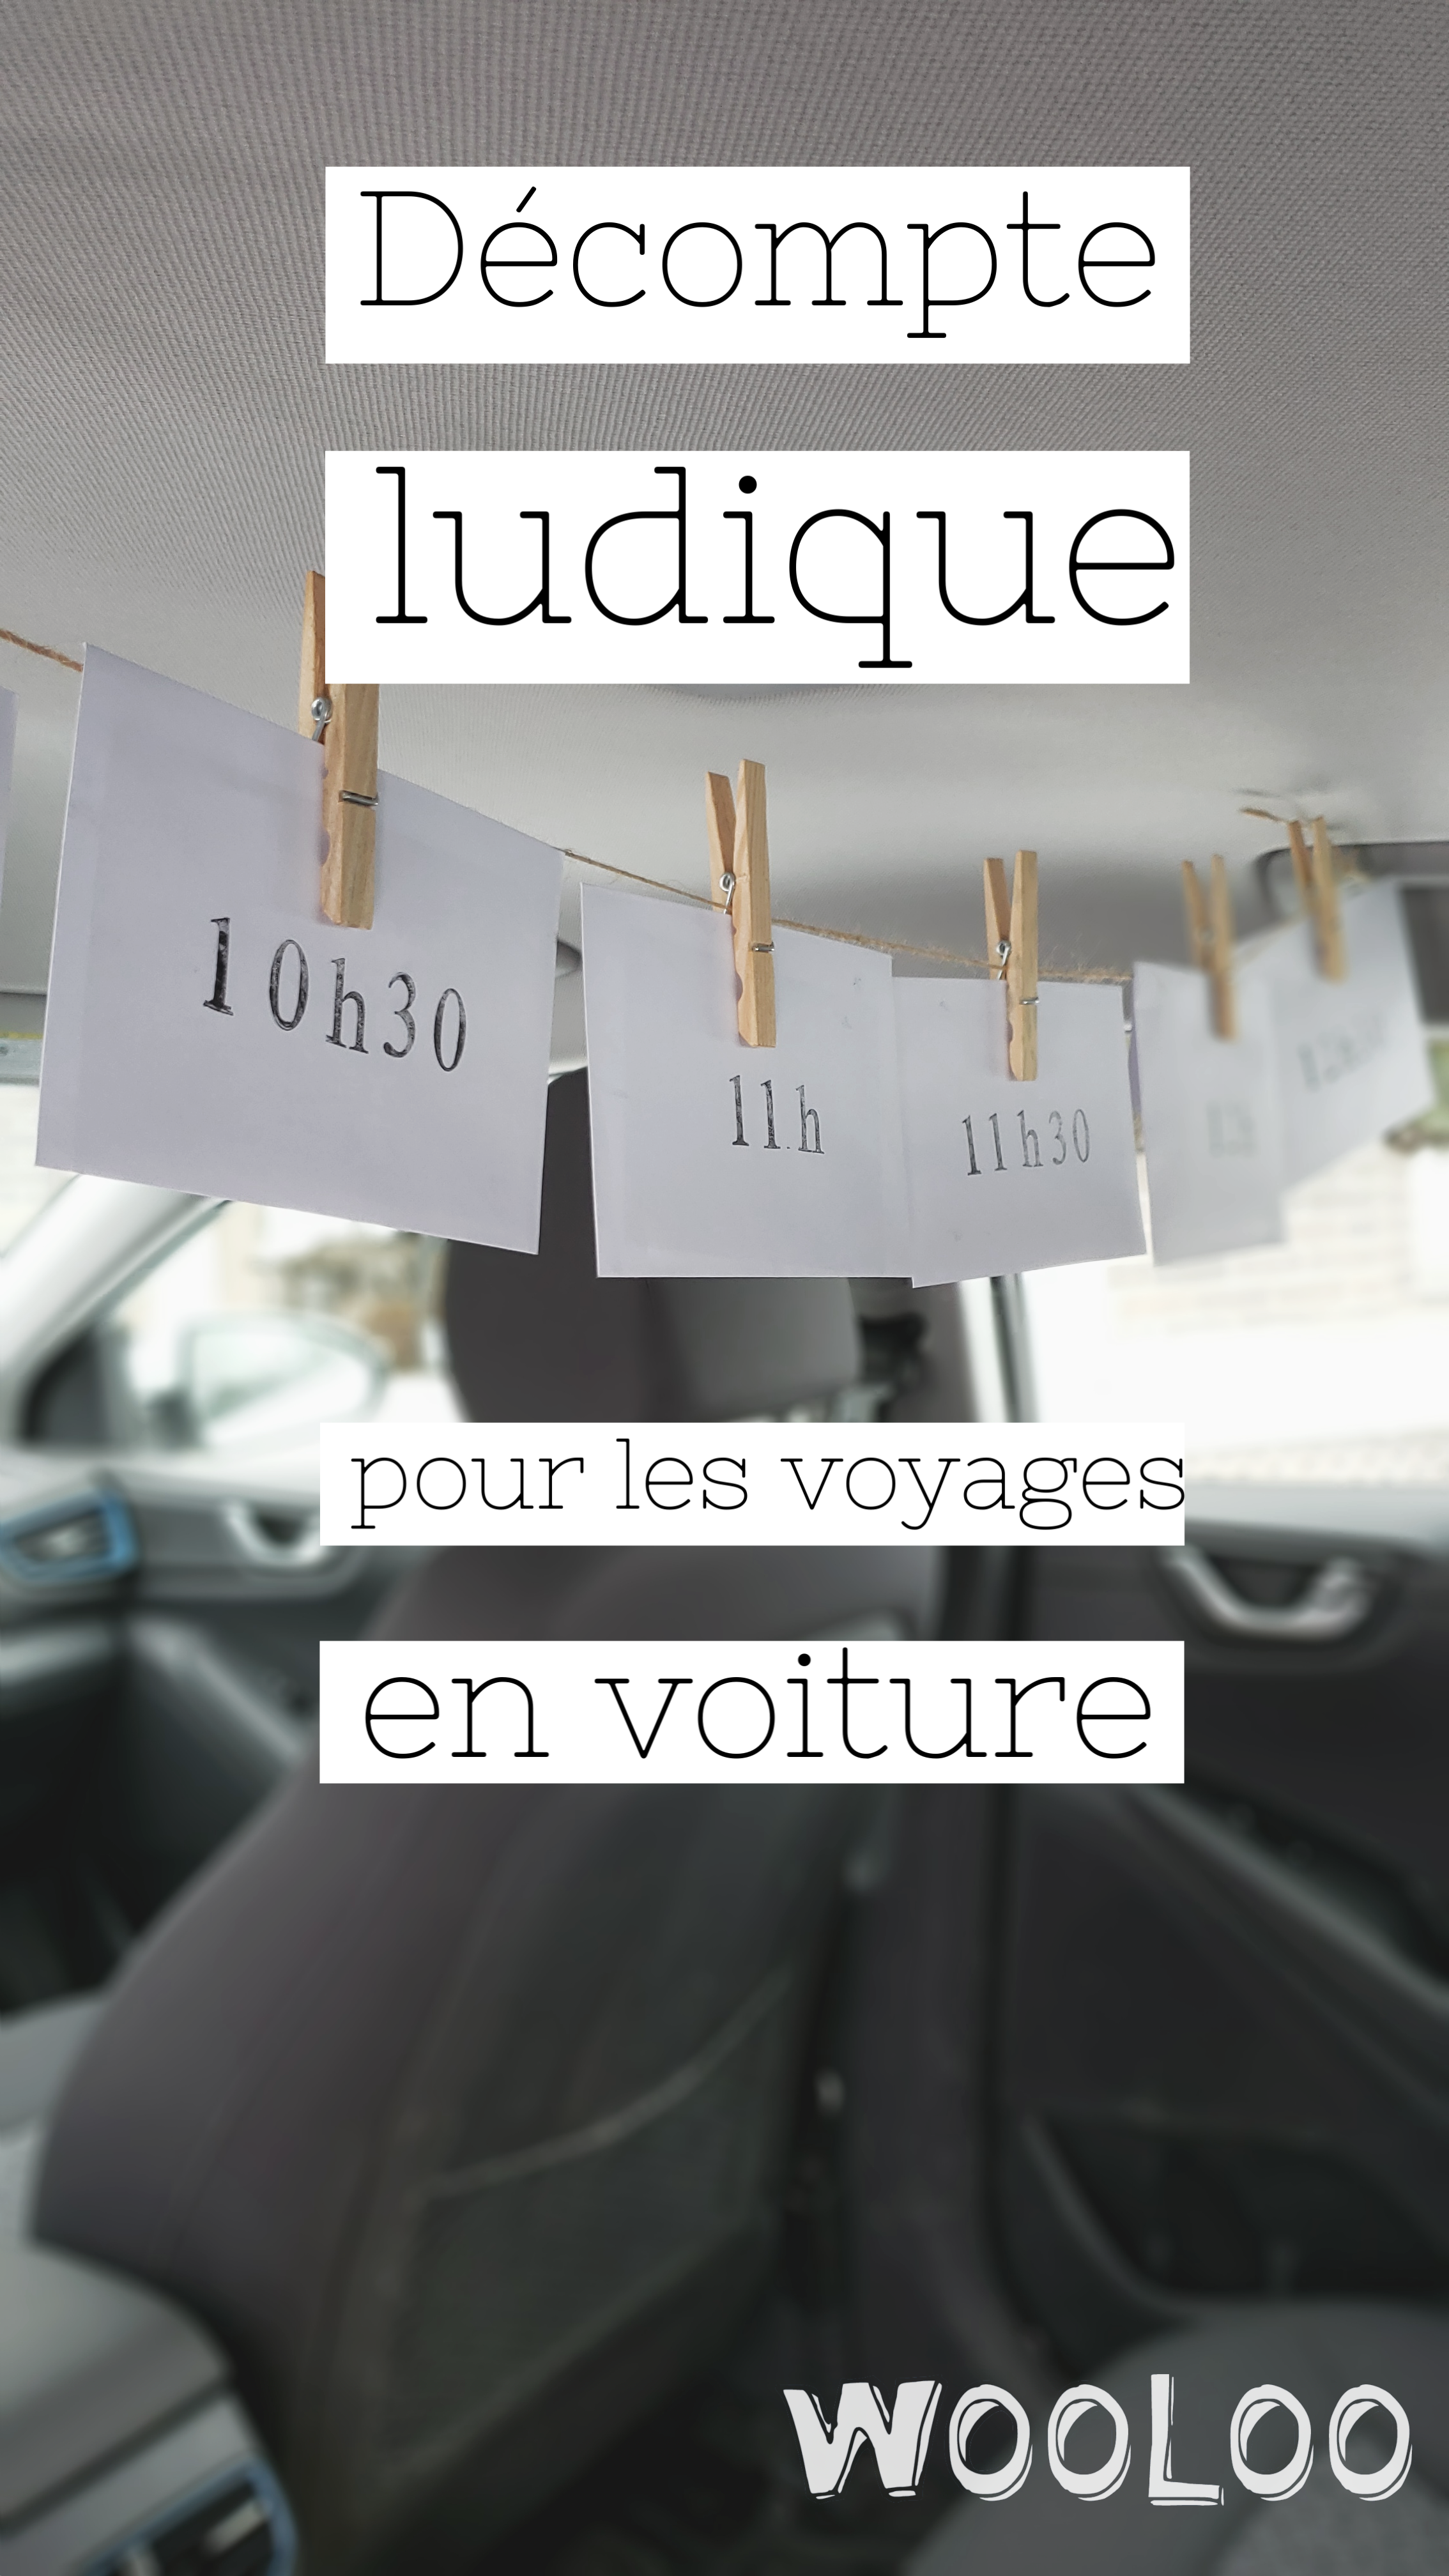 compte_a-rebours_voiture_wooloo